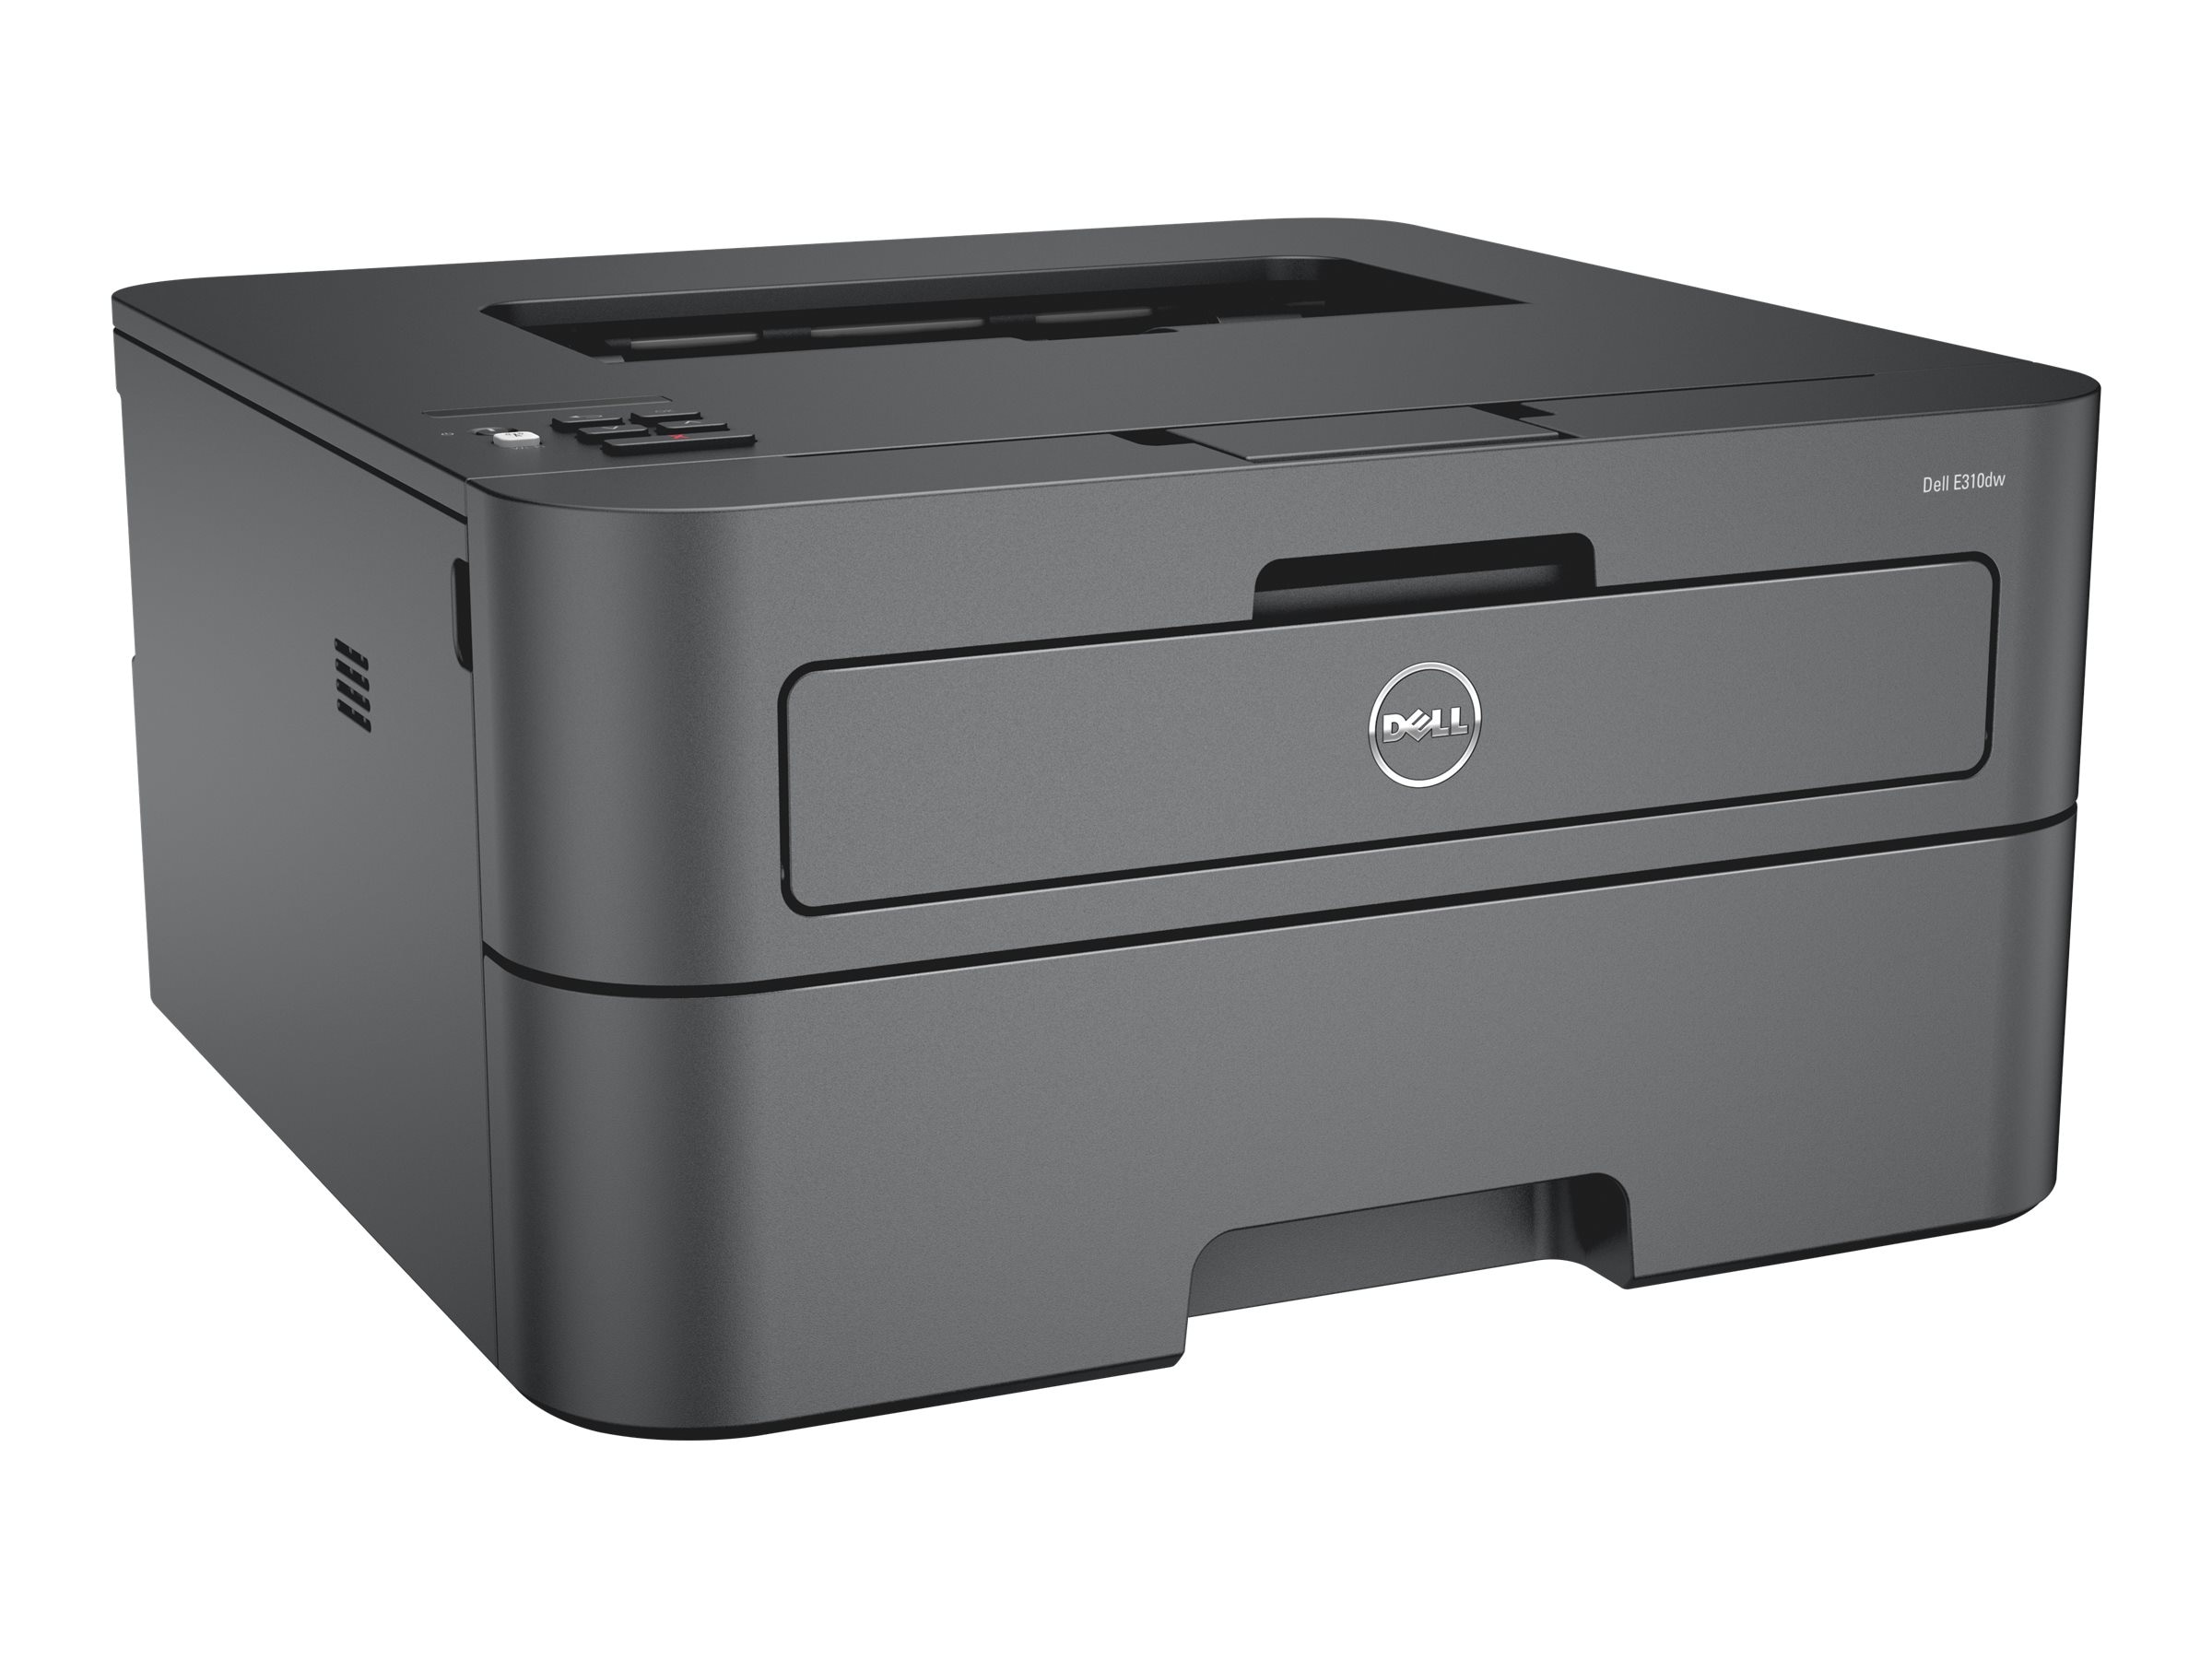 Dell E310dw Black & White Laser Printer (210-AEHL), E310DW